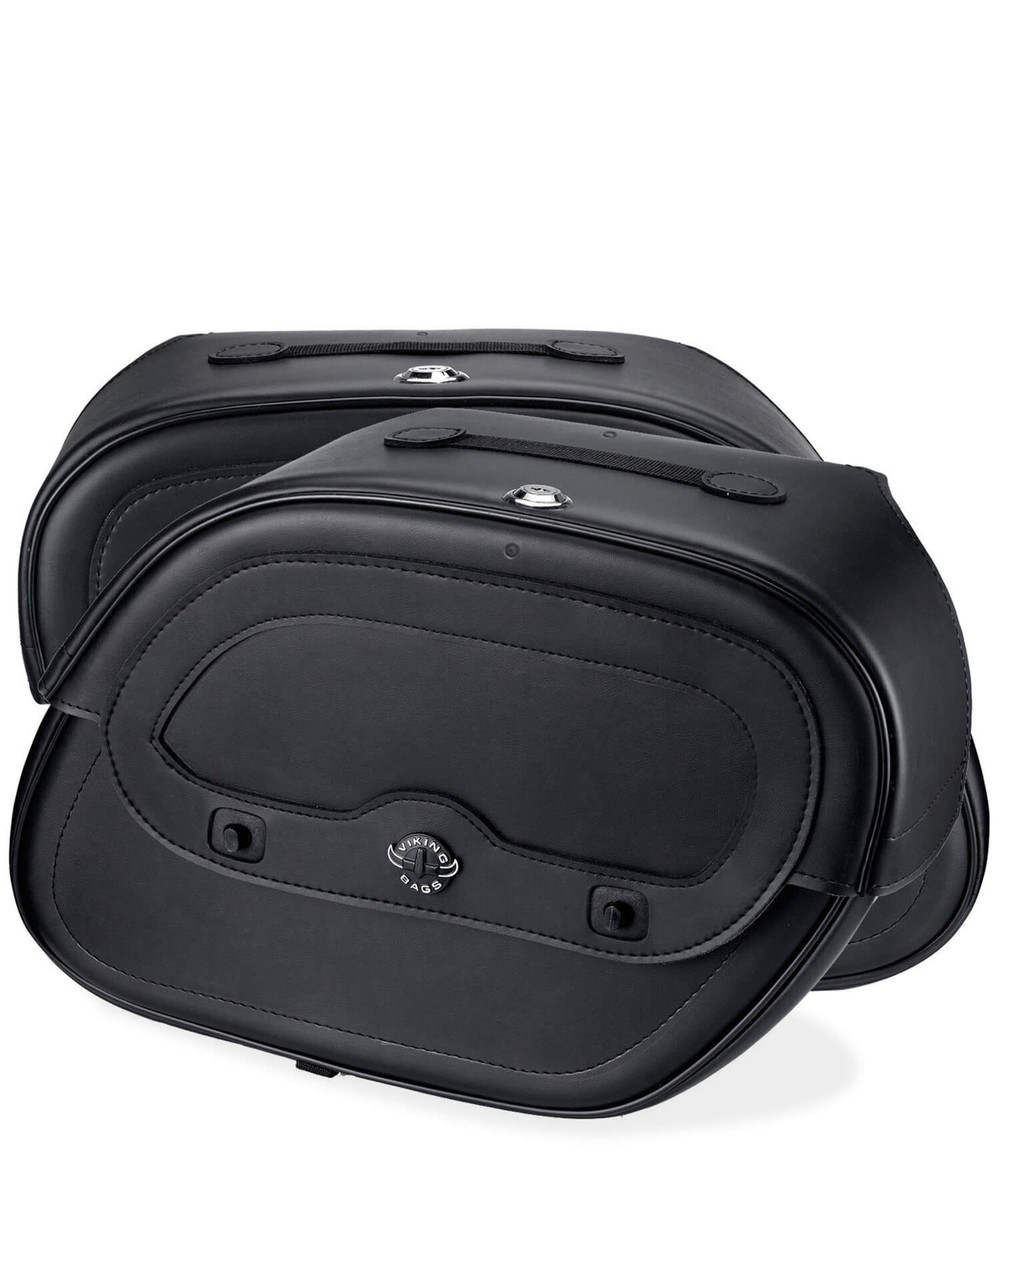 Honda 1500 Valkyrie Standard Spear Shock Cutout Motorcycle saddlebags Both Bags View